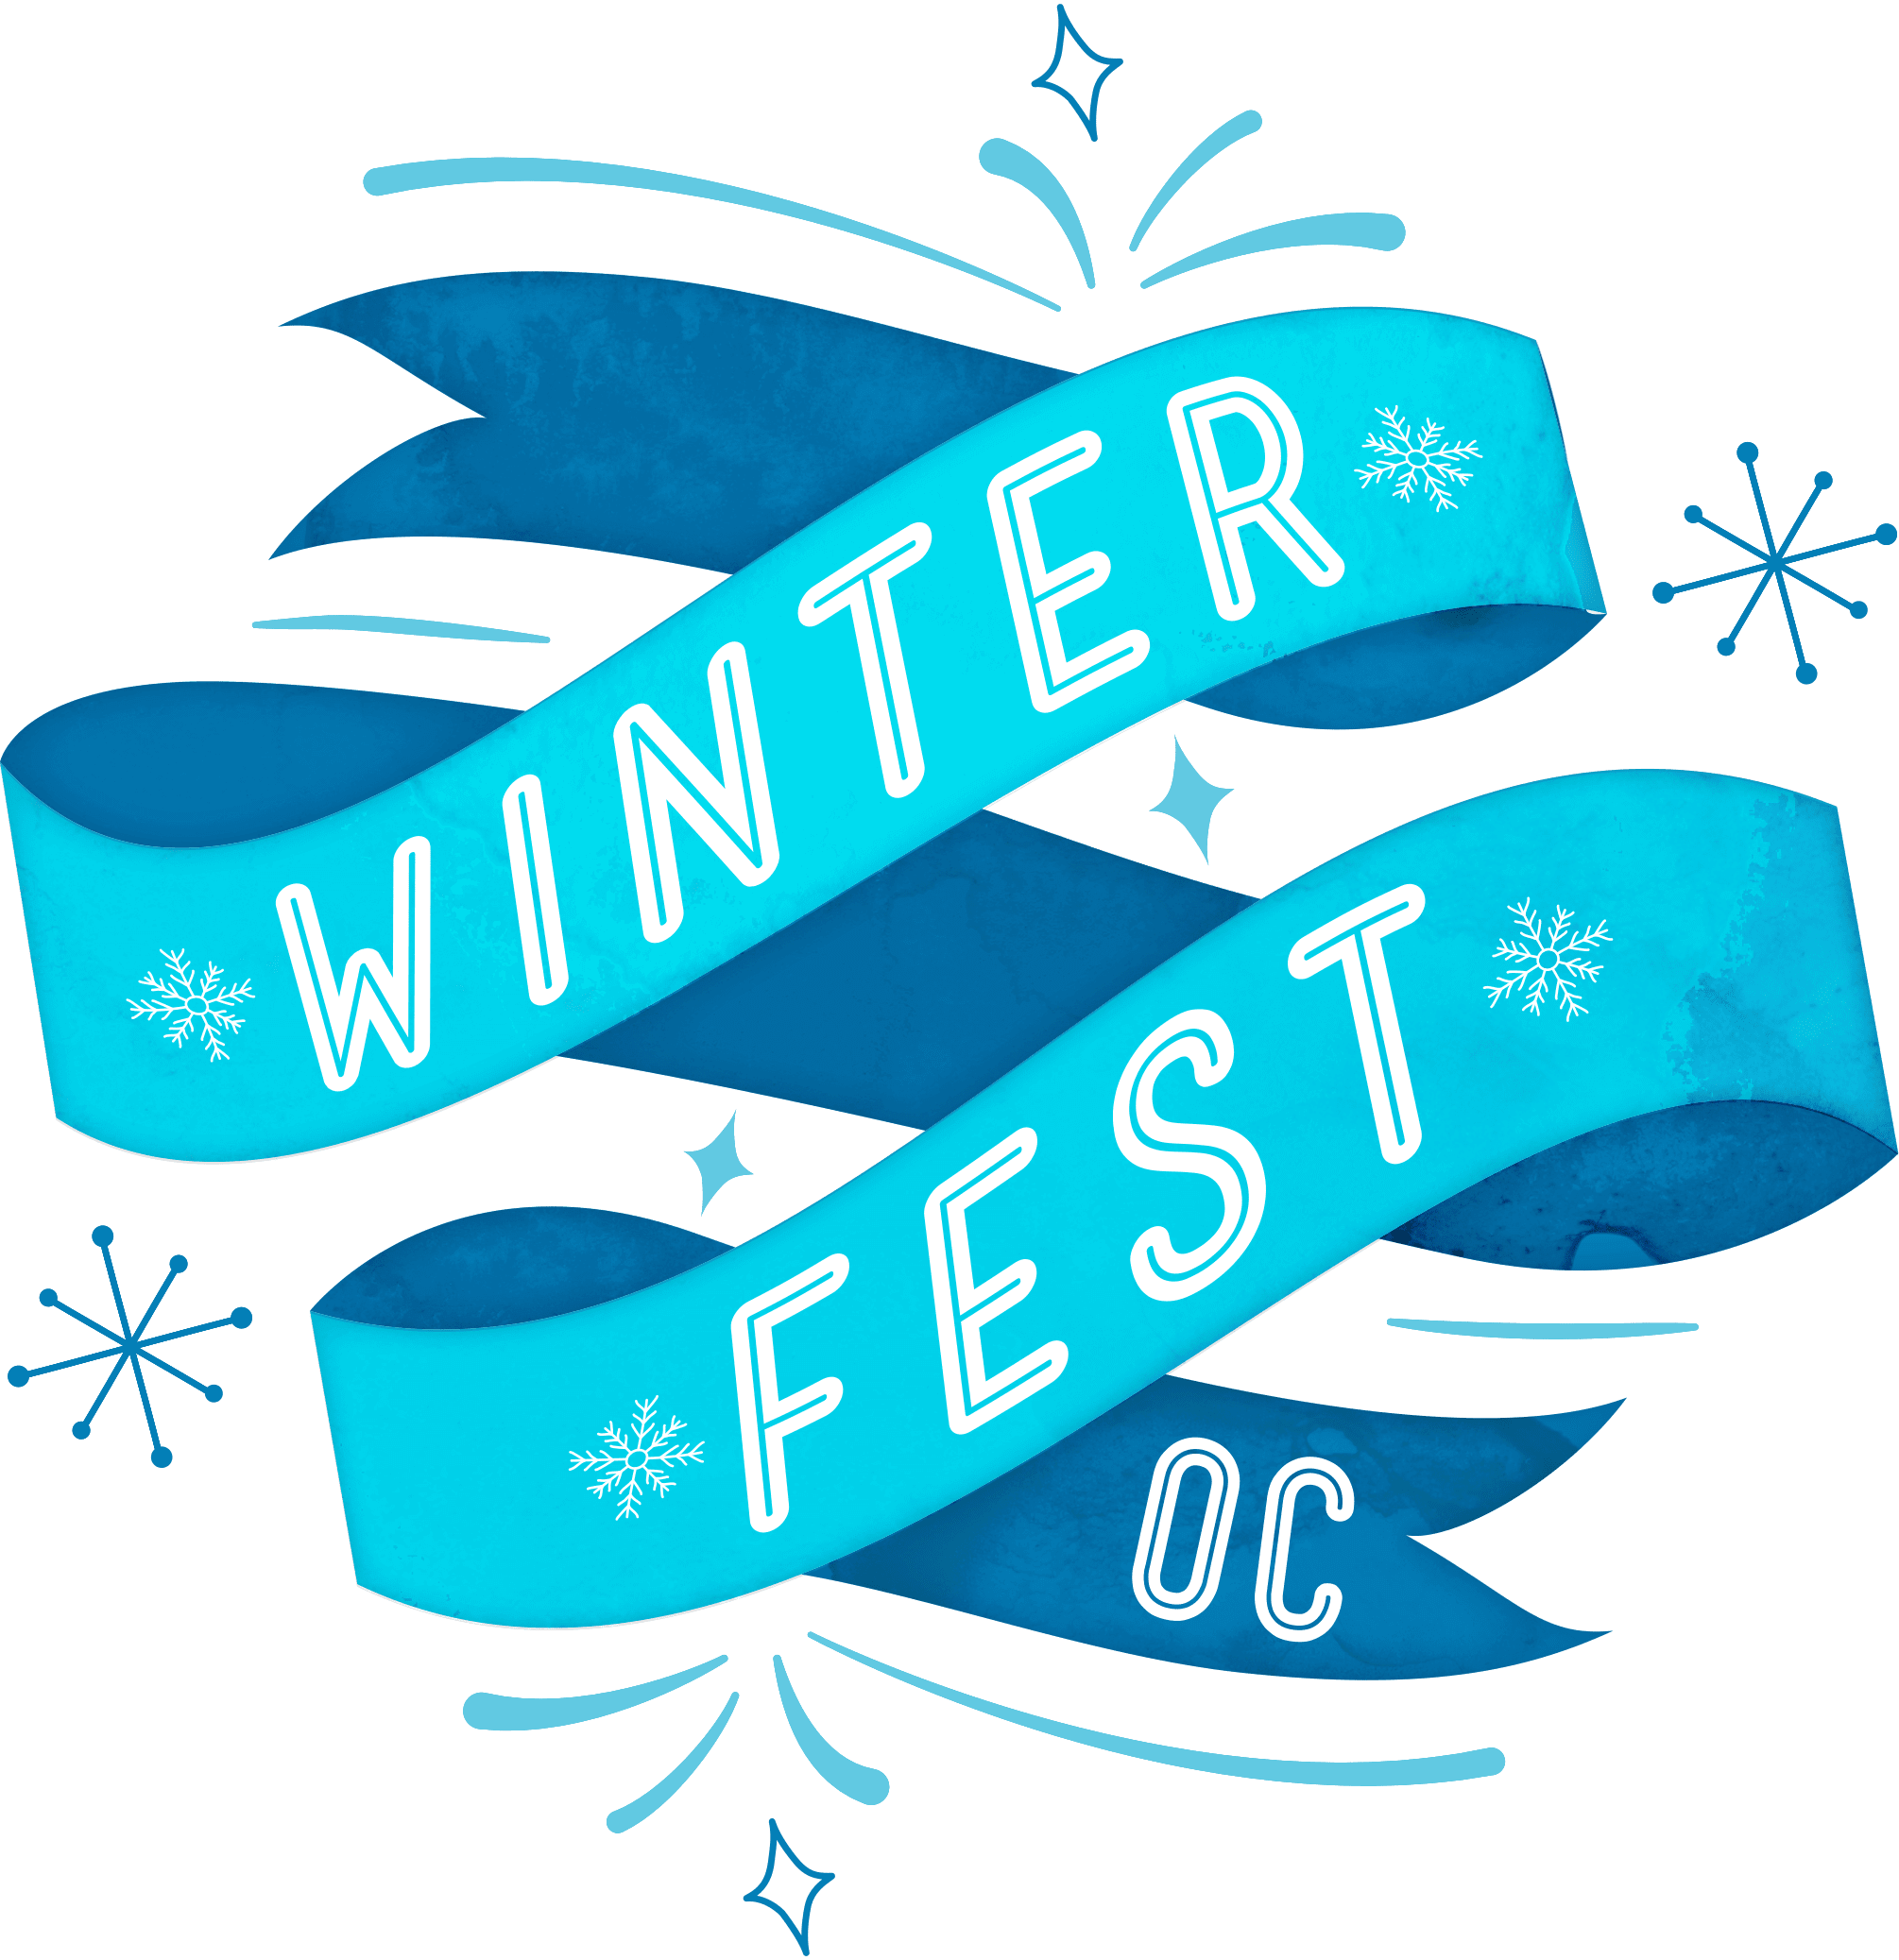 Winter Fest OC 2019